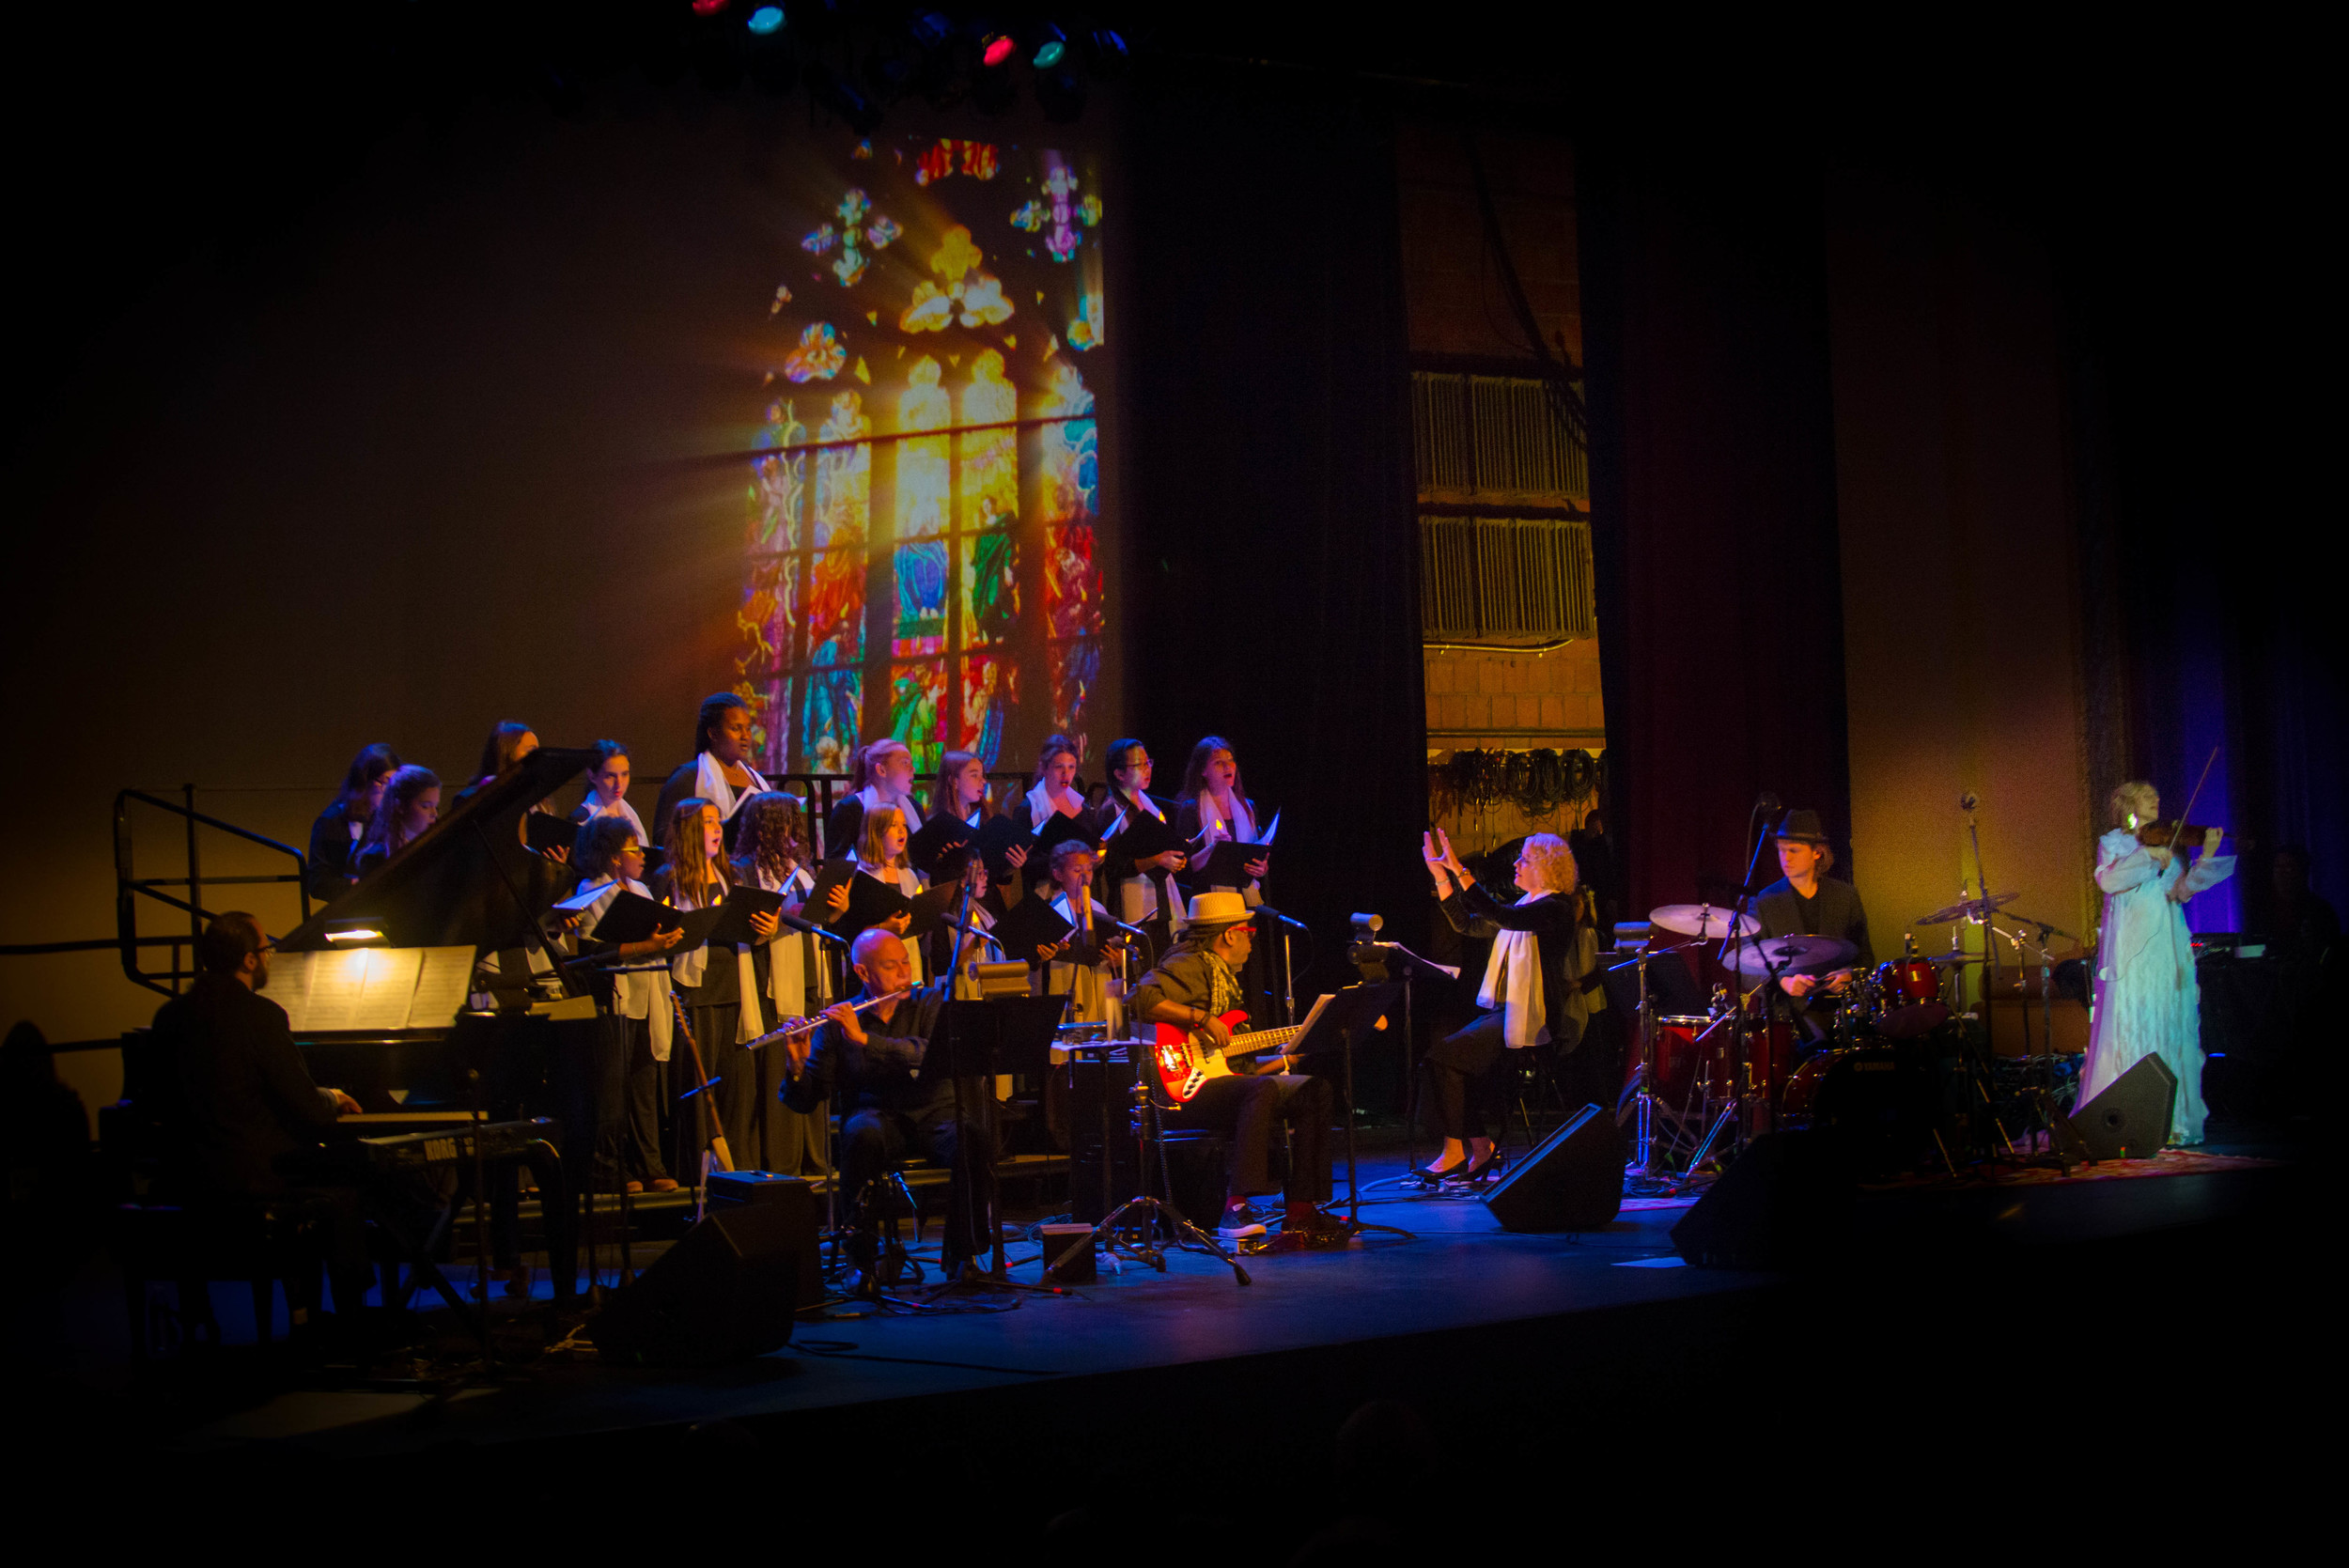 We had a fabulous show at the Paramount Hudson Valley on Dec 6th 2015, this is how the show started with the Westchester Youth Choirs. Beautiful lighting by Molly Tiede, and stunning projections by Rich Mason